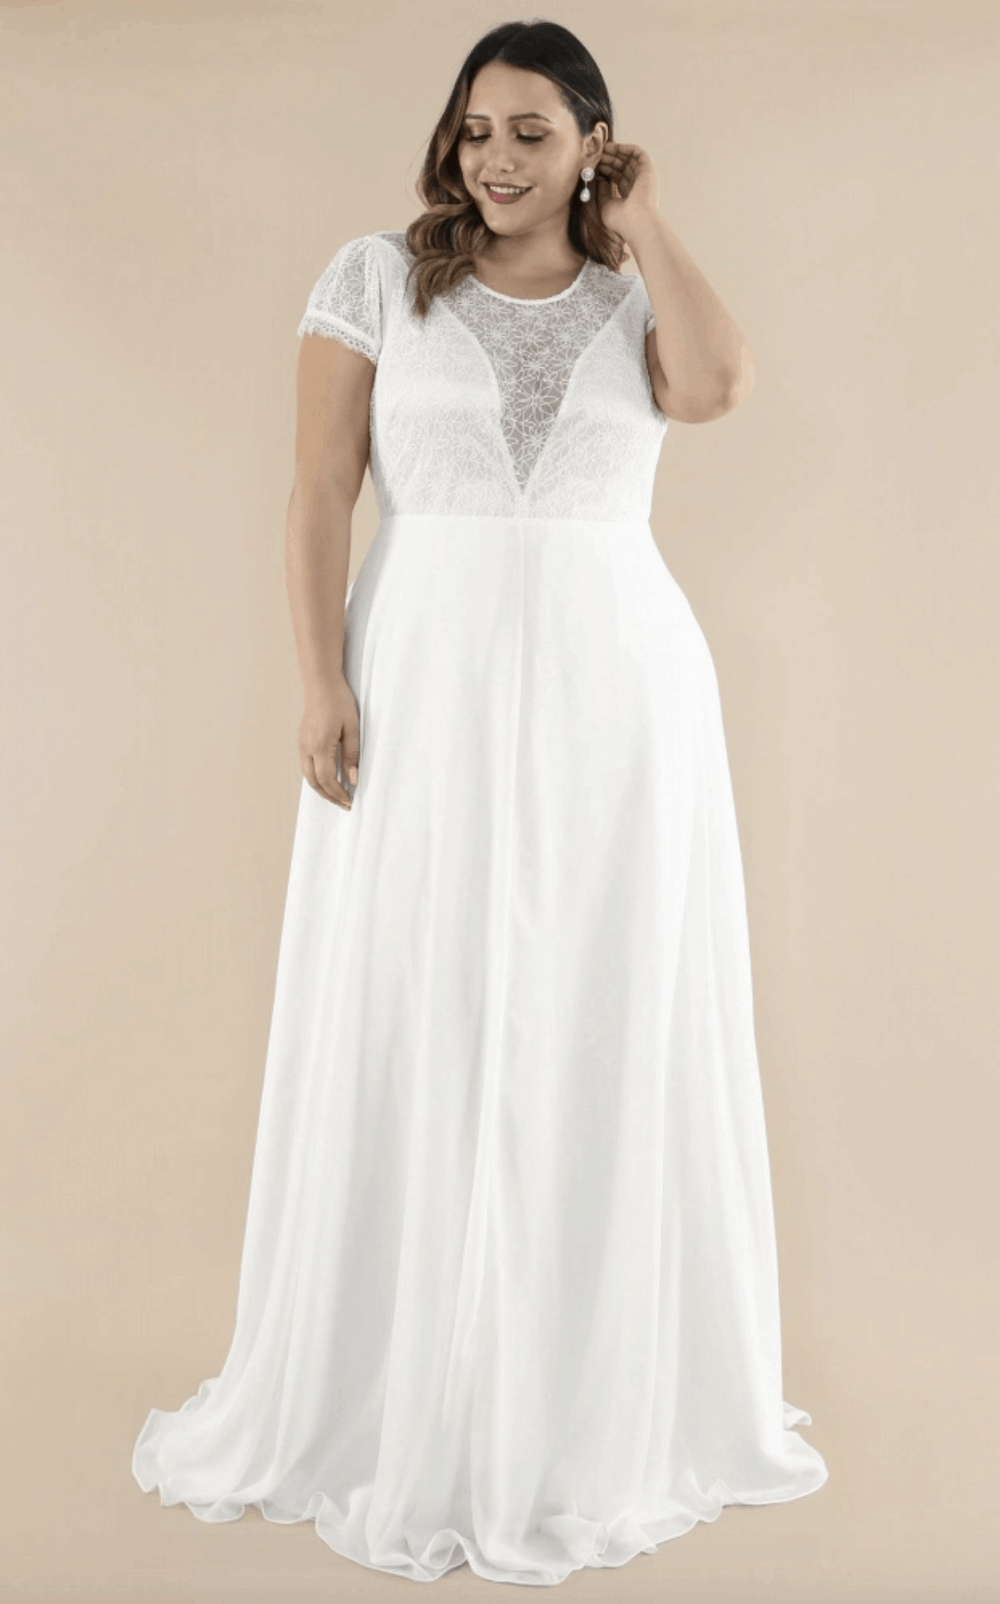 Plus Size Bridal Gowns and Wedding Dresses Perfect for Curvy Brides Lace Bodice